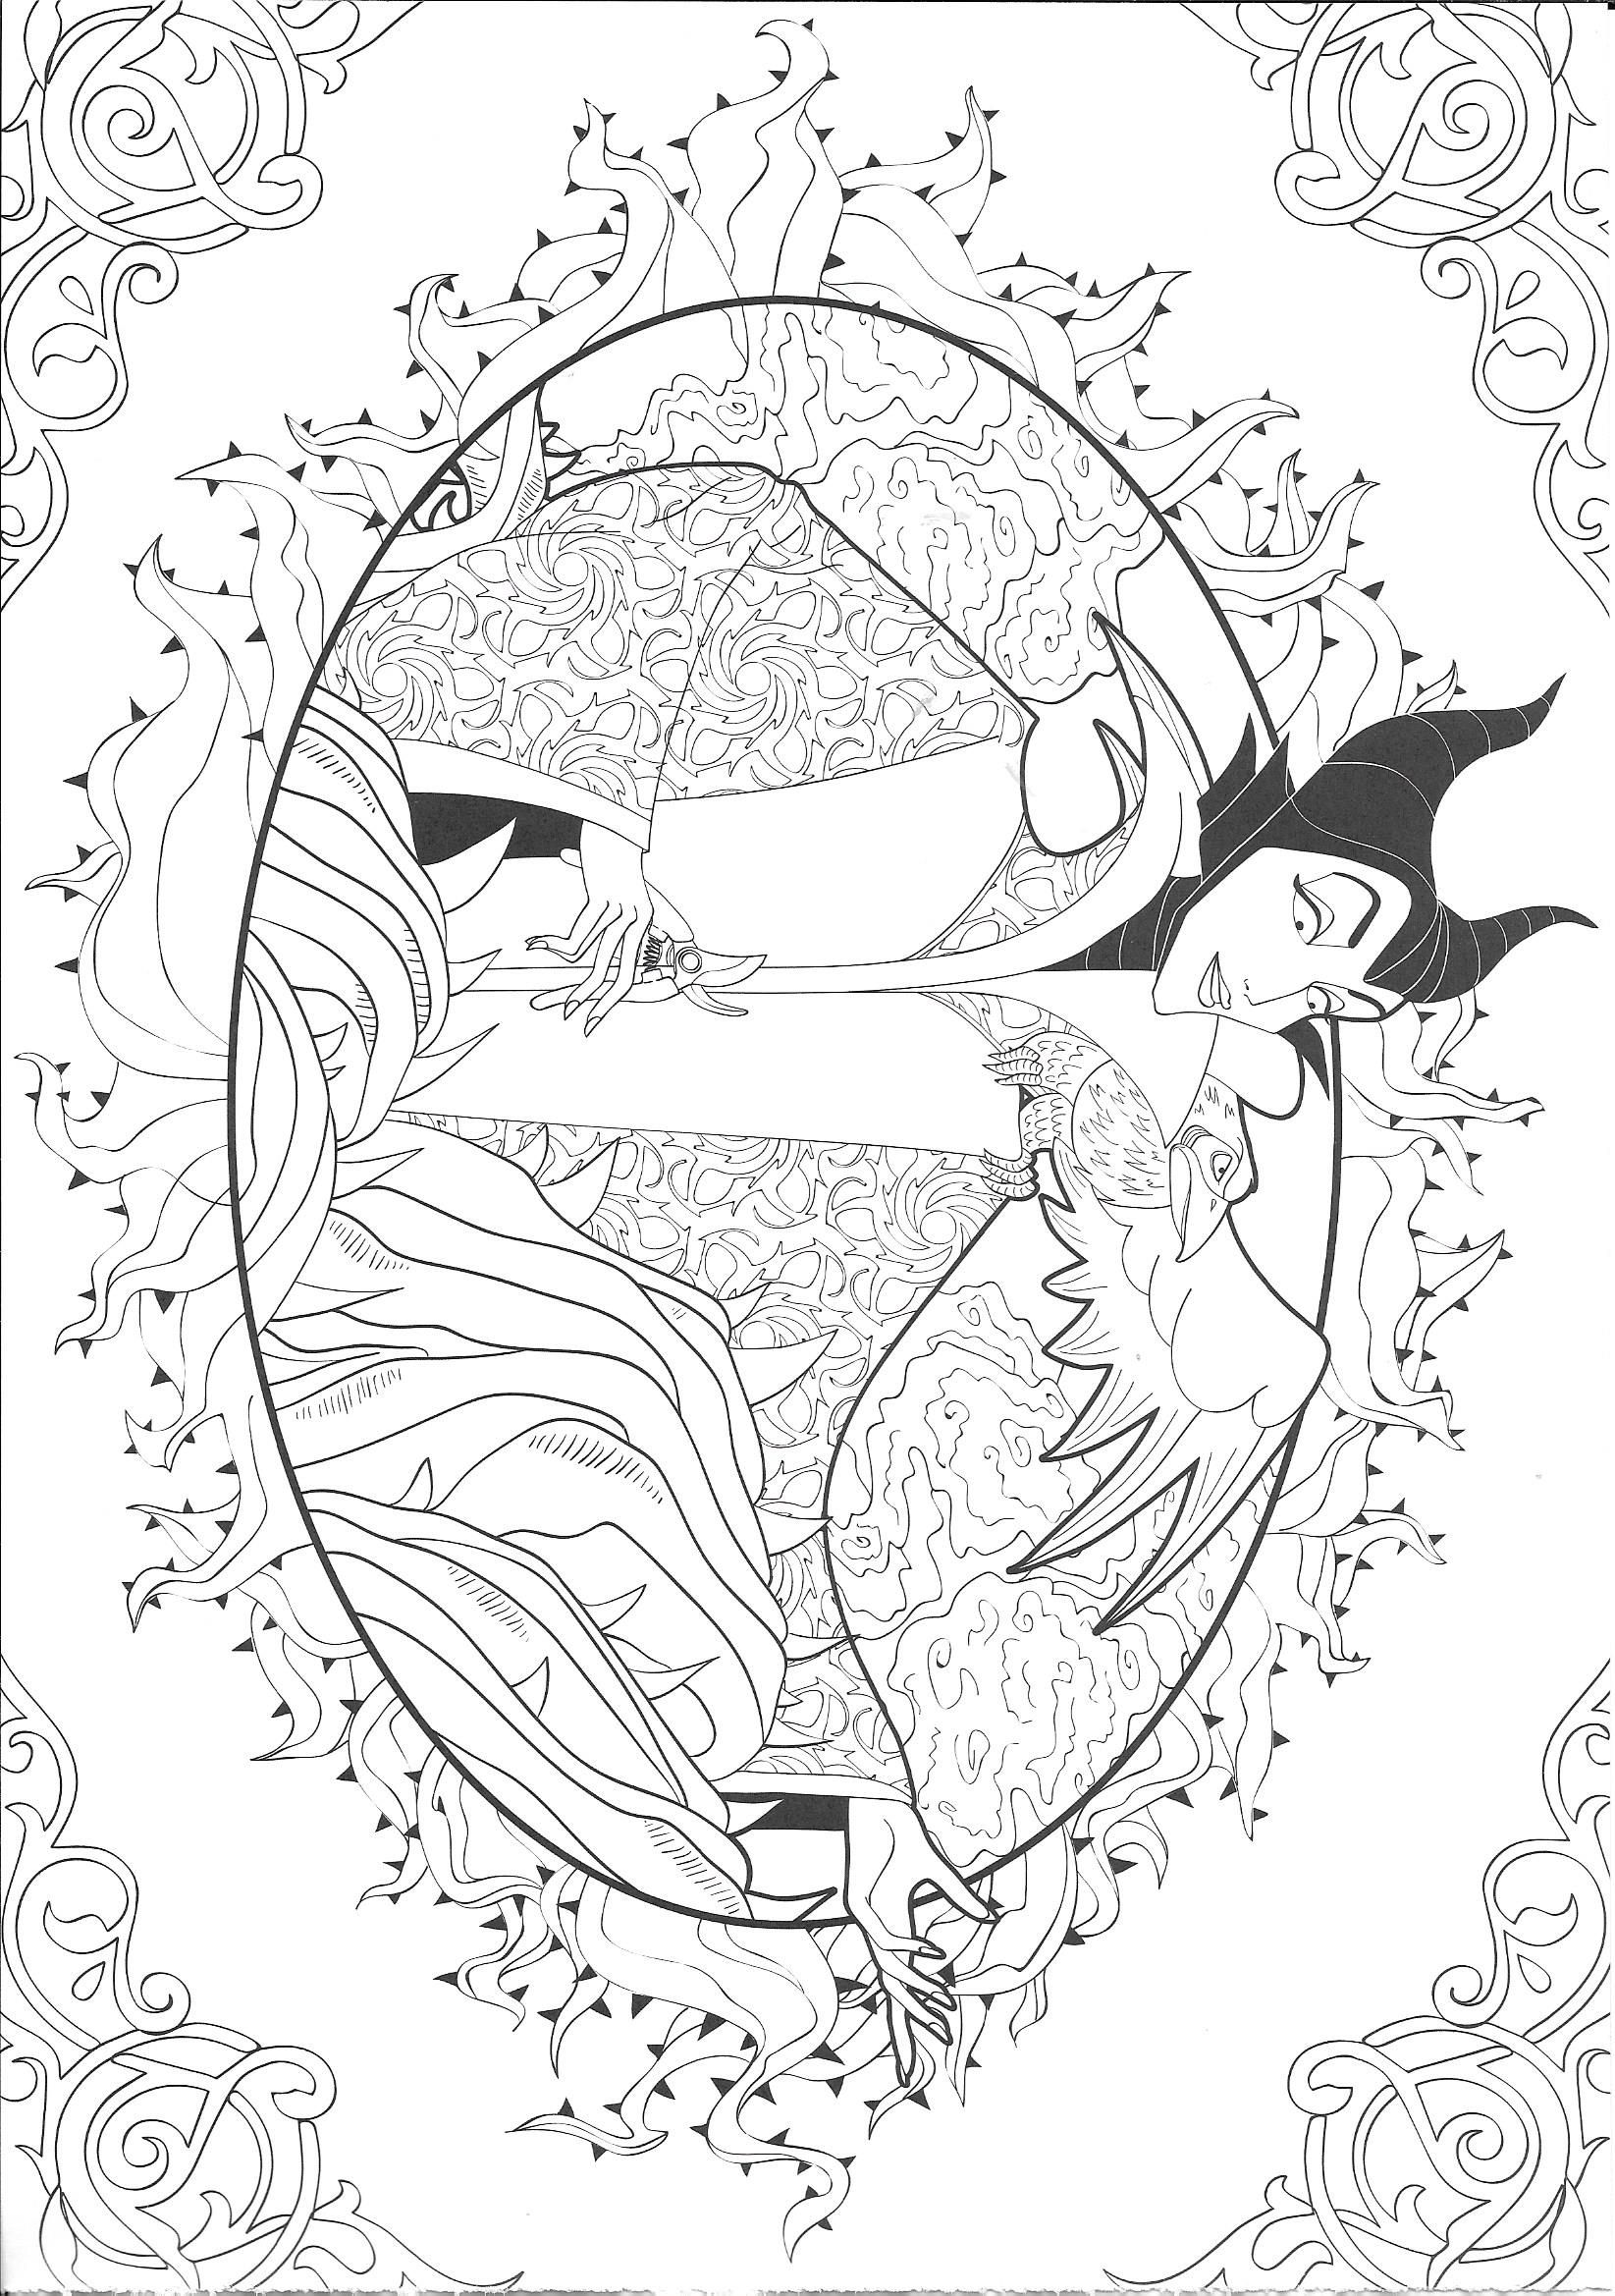 Pin By Wendy Brown On Disney Disney Coloring Pages Disney Princess Coloring Pages Cool Coloring Pages [ 2338 x 1645 Pixel ]